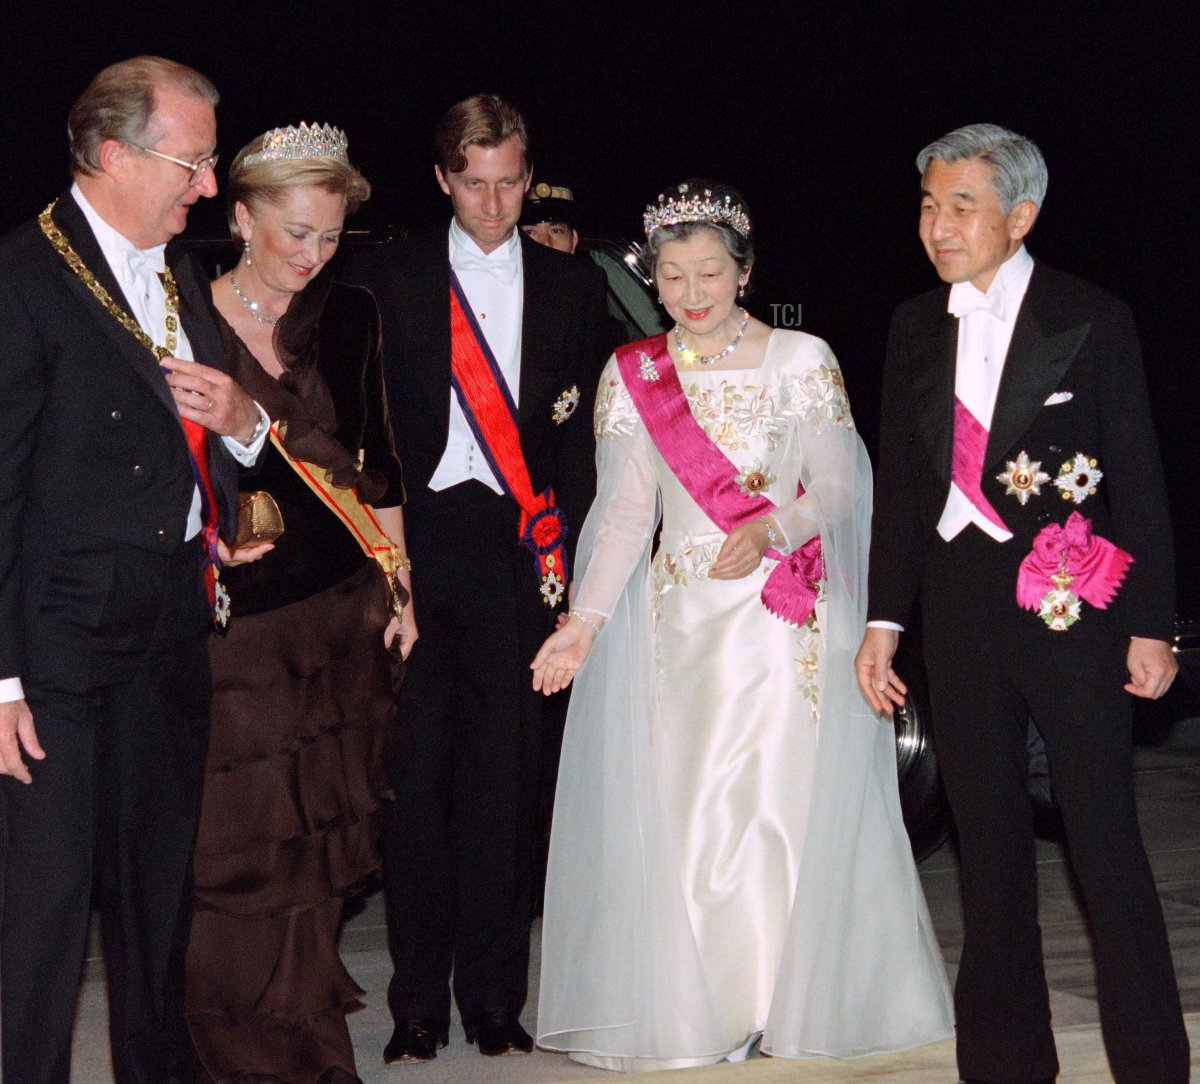 The Belgian King Albert II (L) and Queen Paola (2ndL) and their eldest son, crown Prince Philippe of Belgium (C) are welcomed by Japanese Empress Michiko and Emperor Akihito, at the Imperial Palace for a diner, on October 22, 1996 in Tokyo